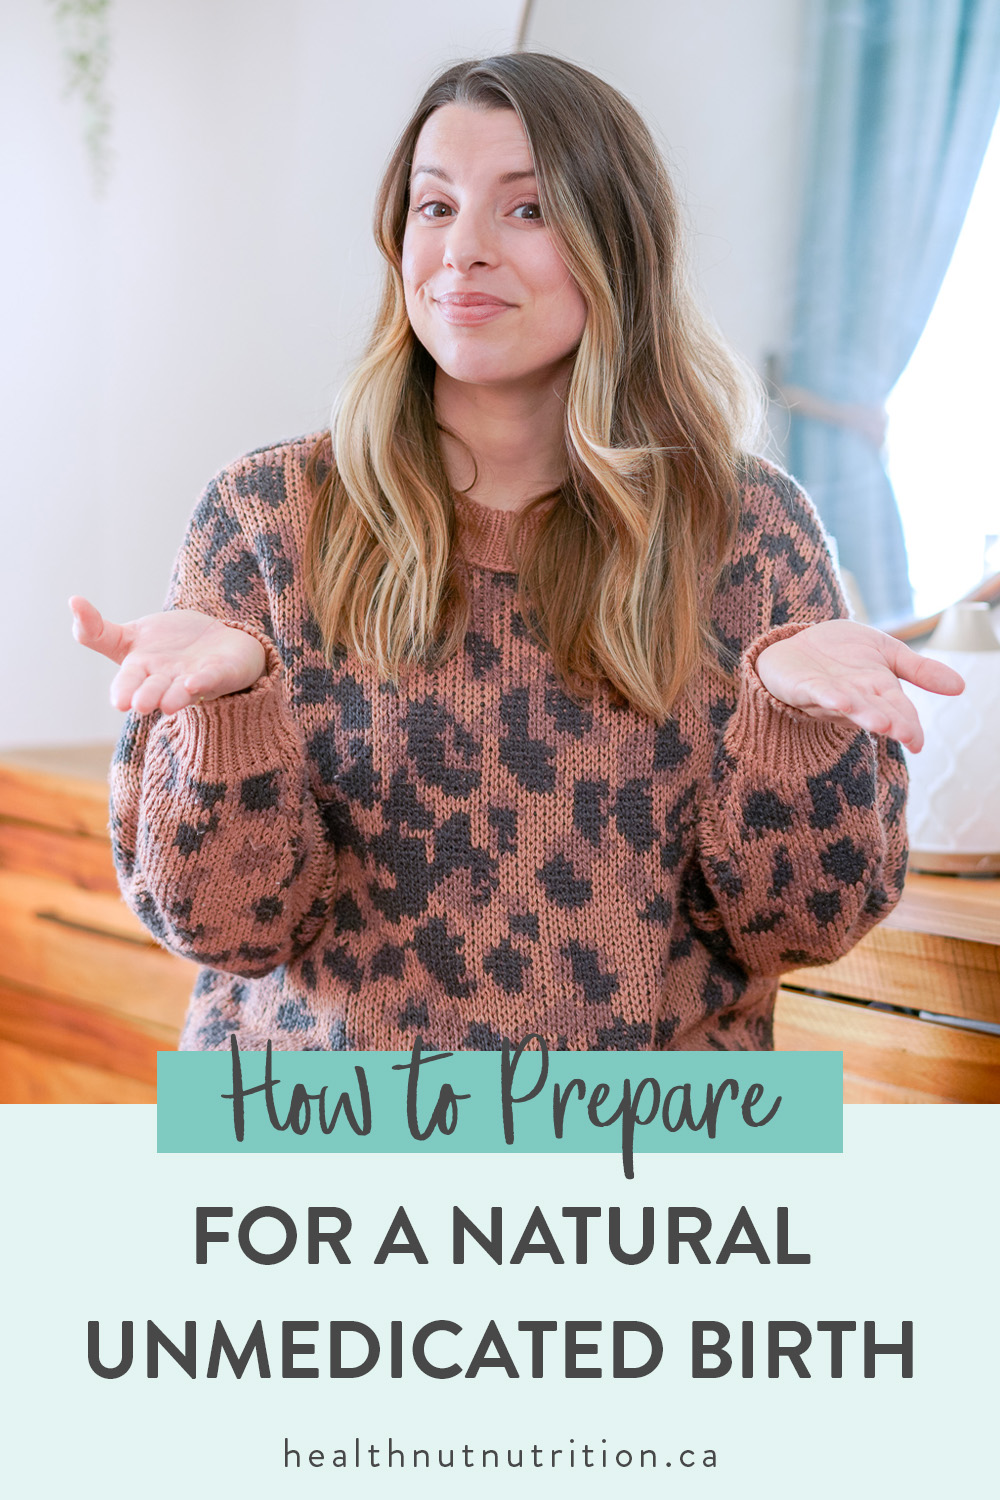 Tips to prepare for a natural unmedicated birth. Support your body during pregnancy, labour, and delivery using safe and natural techniques.